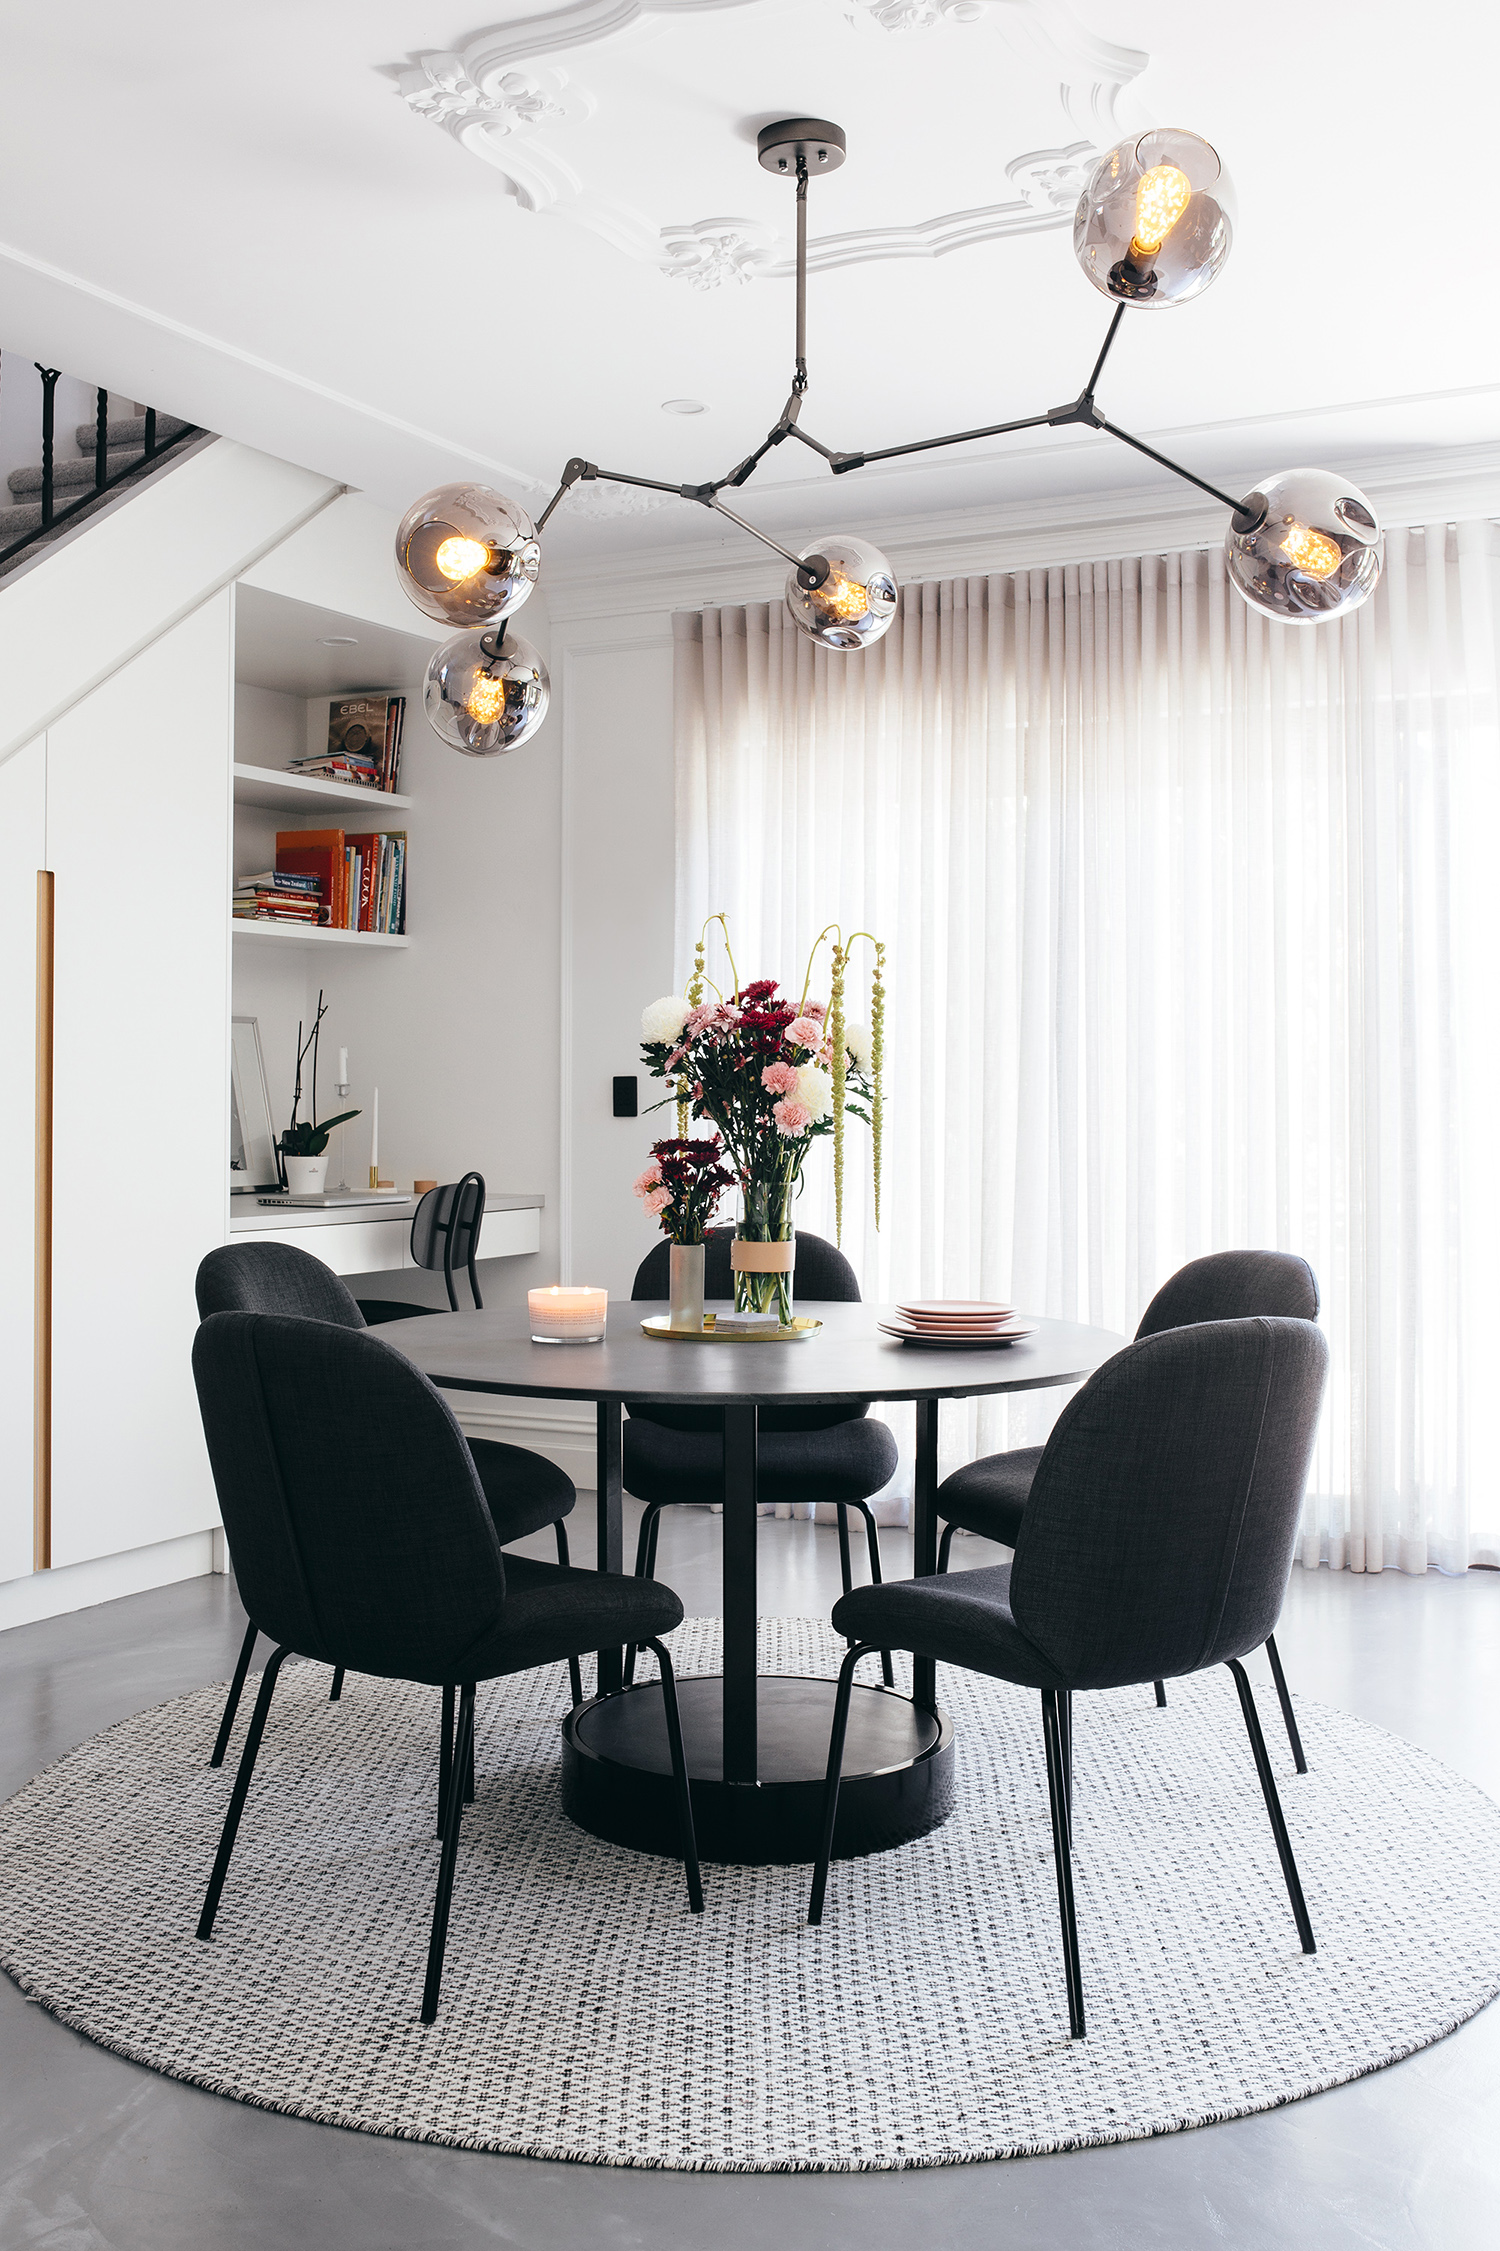 """""""It was a lot of work to add all the wainscoting, ceiling roses and plaster glass cornice throughout our home, but it produced a great result. To achieve a French-feeling interior, those kinds of details are required,"""" says Matt. Replica Lindsey Adelman 'Bubble' chandelier from Lucretia Lighting; 'Bella' dining chairs from GlobeWest; 'Mila' dining table from Nood Co."""